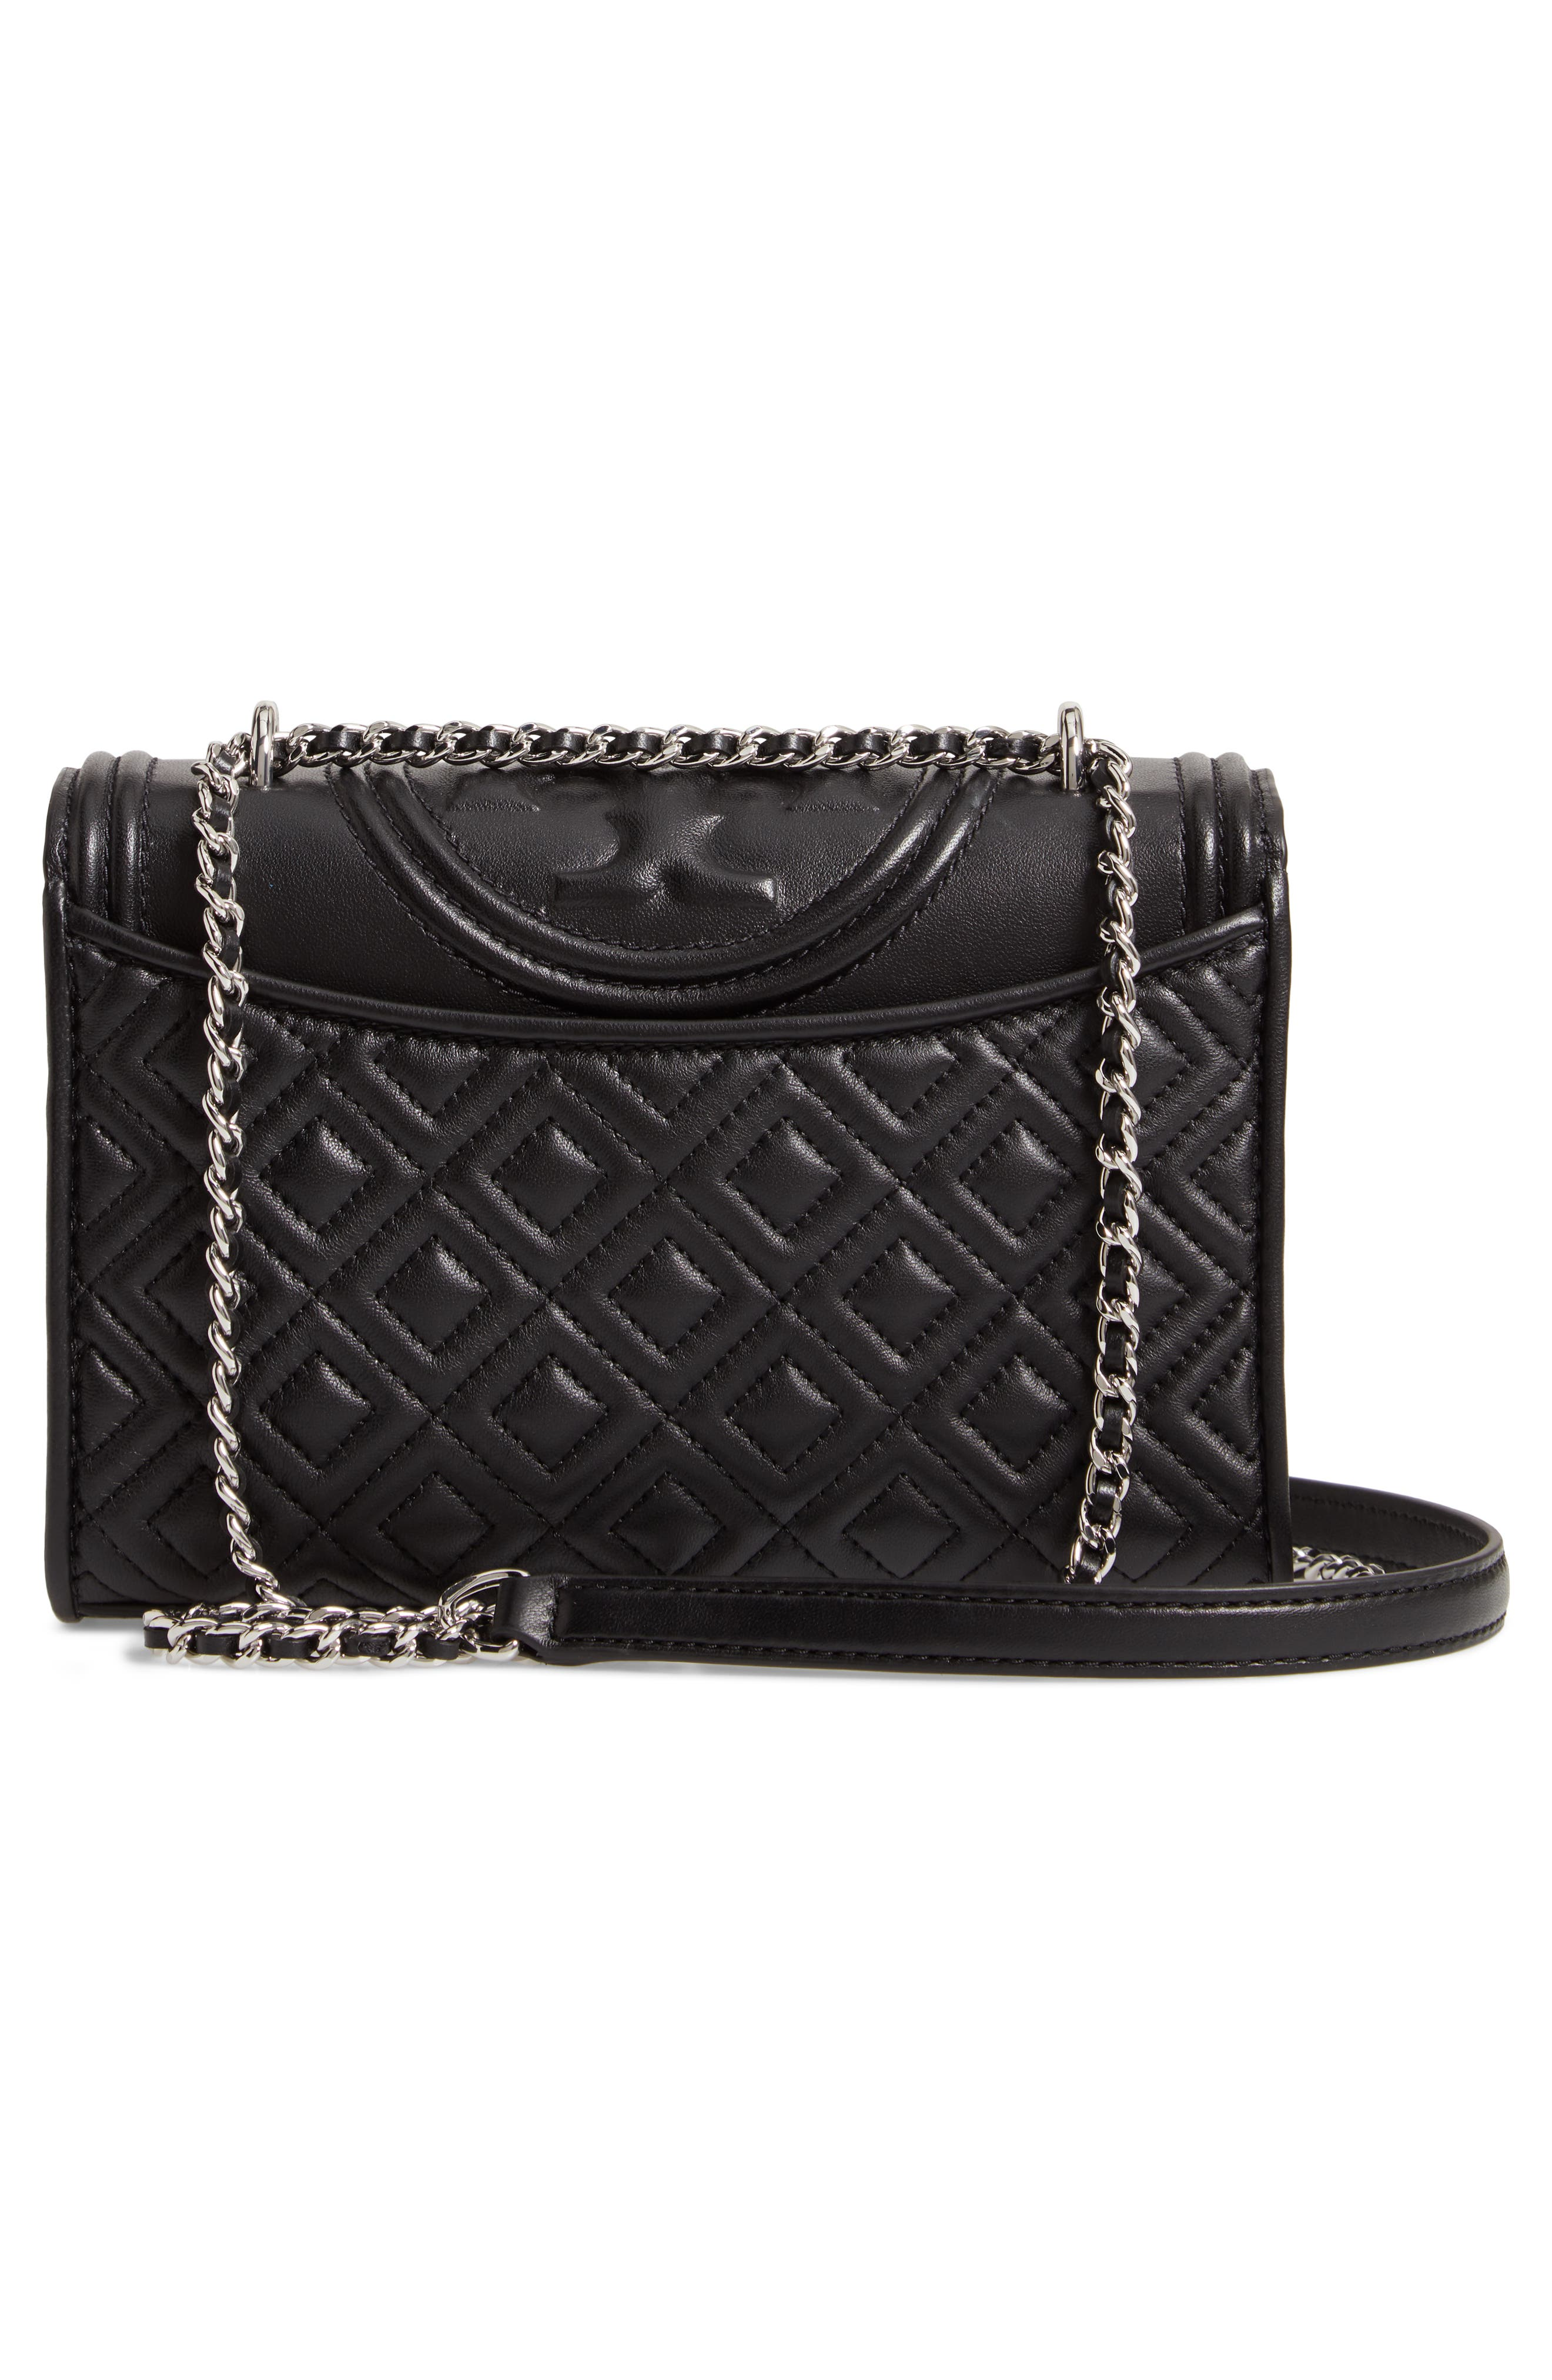 TORY BURCH, Small Fleming Leather Convertible Shoulder Bag, Alternate thumbnail 4, color, BLACK / SILVER